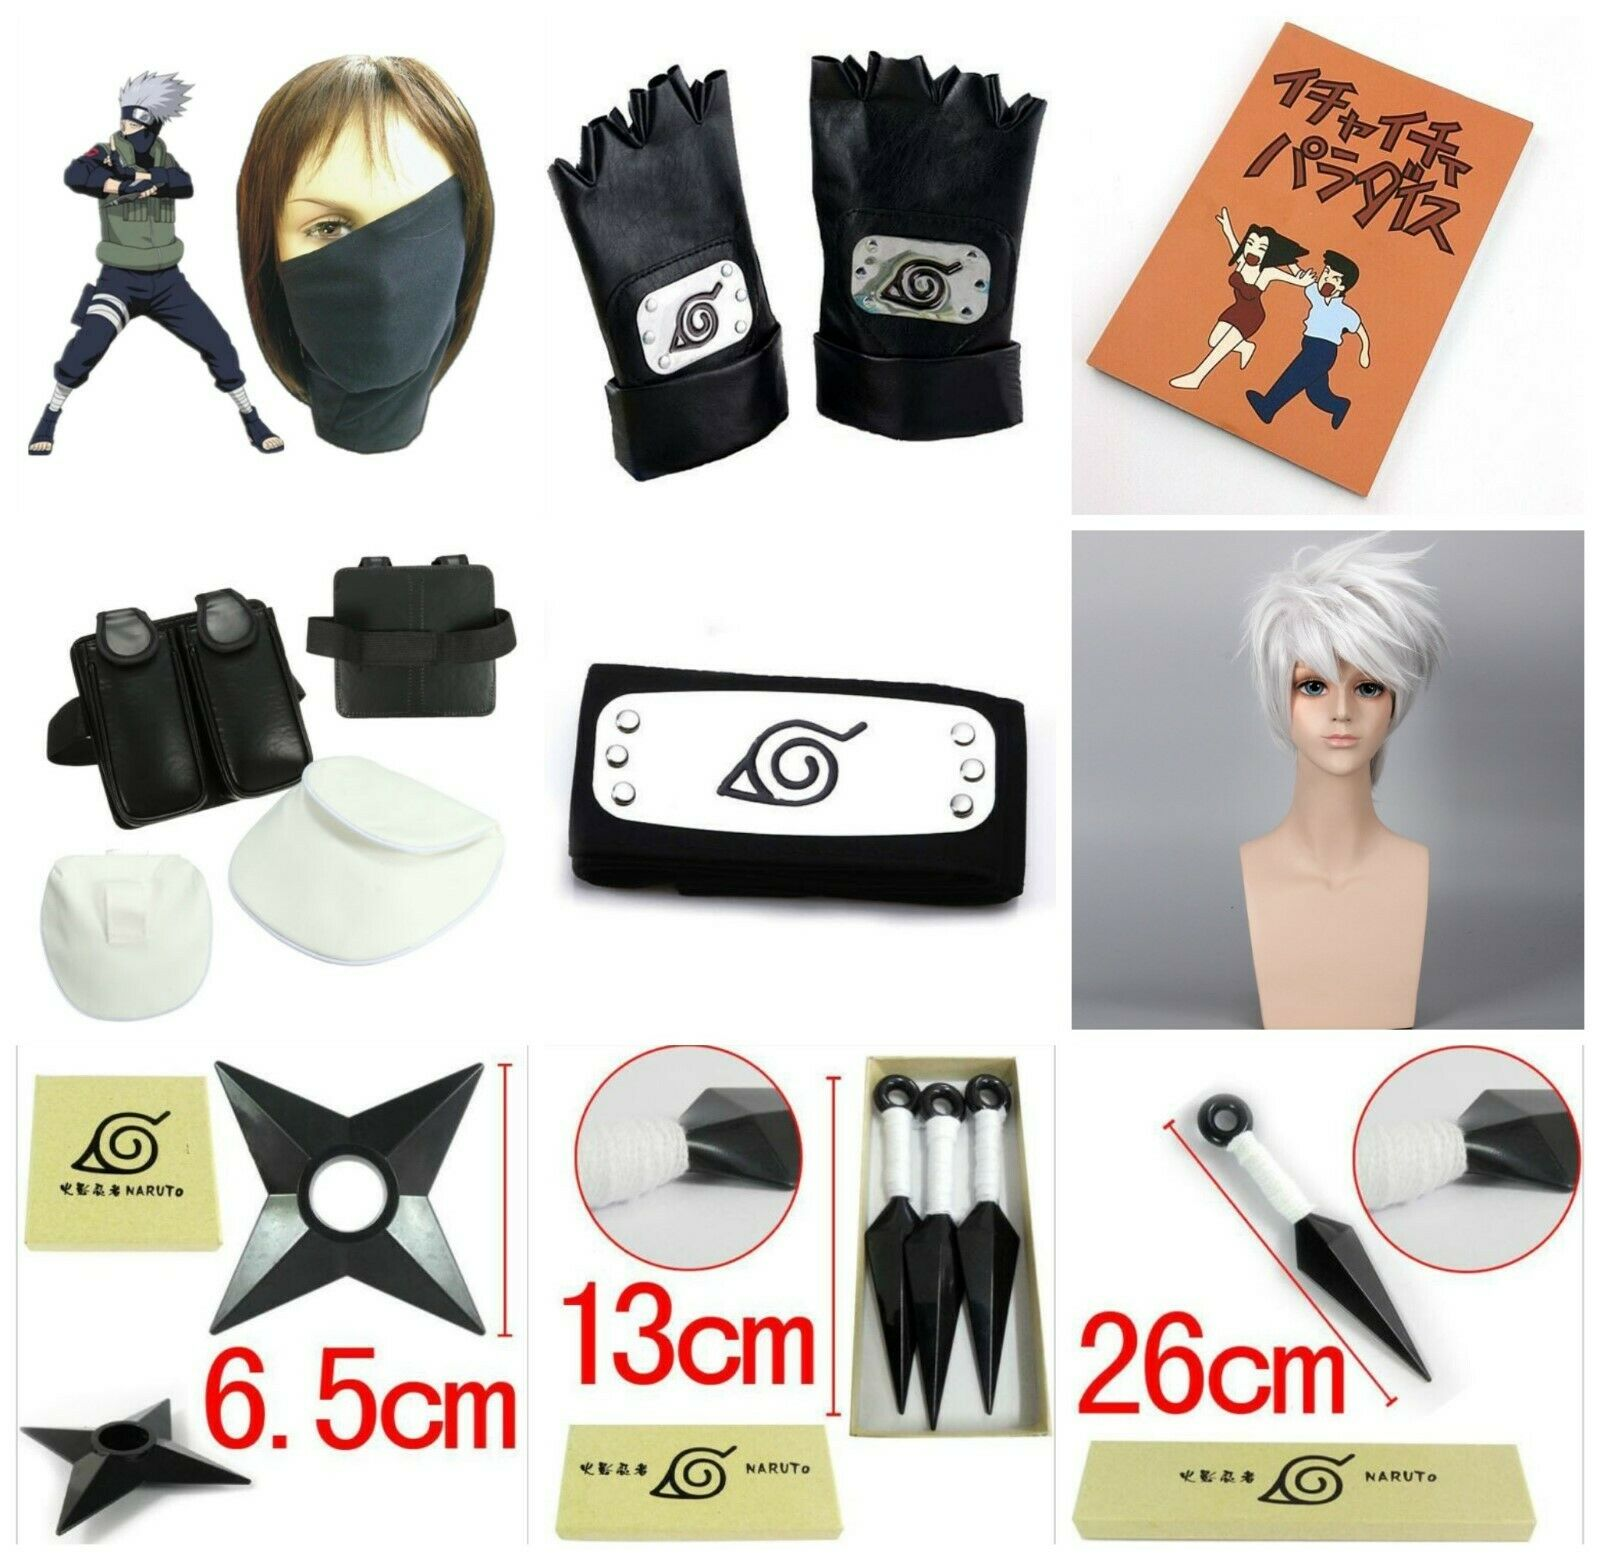 Anime Naruto Hatake Kakashi Cosplay Headband Gloves Wig Face Mask Darts Accessory Shuriken Japanese Halloween Party Apparel